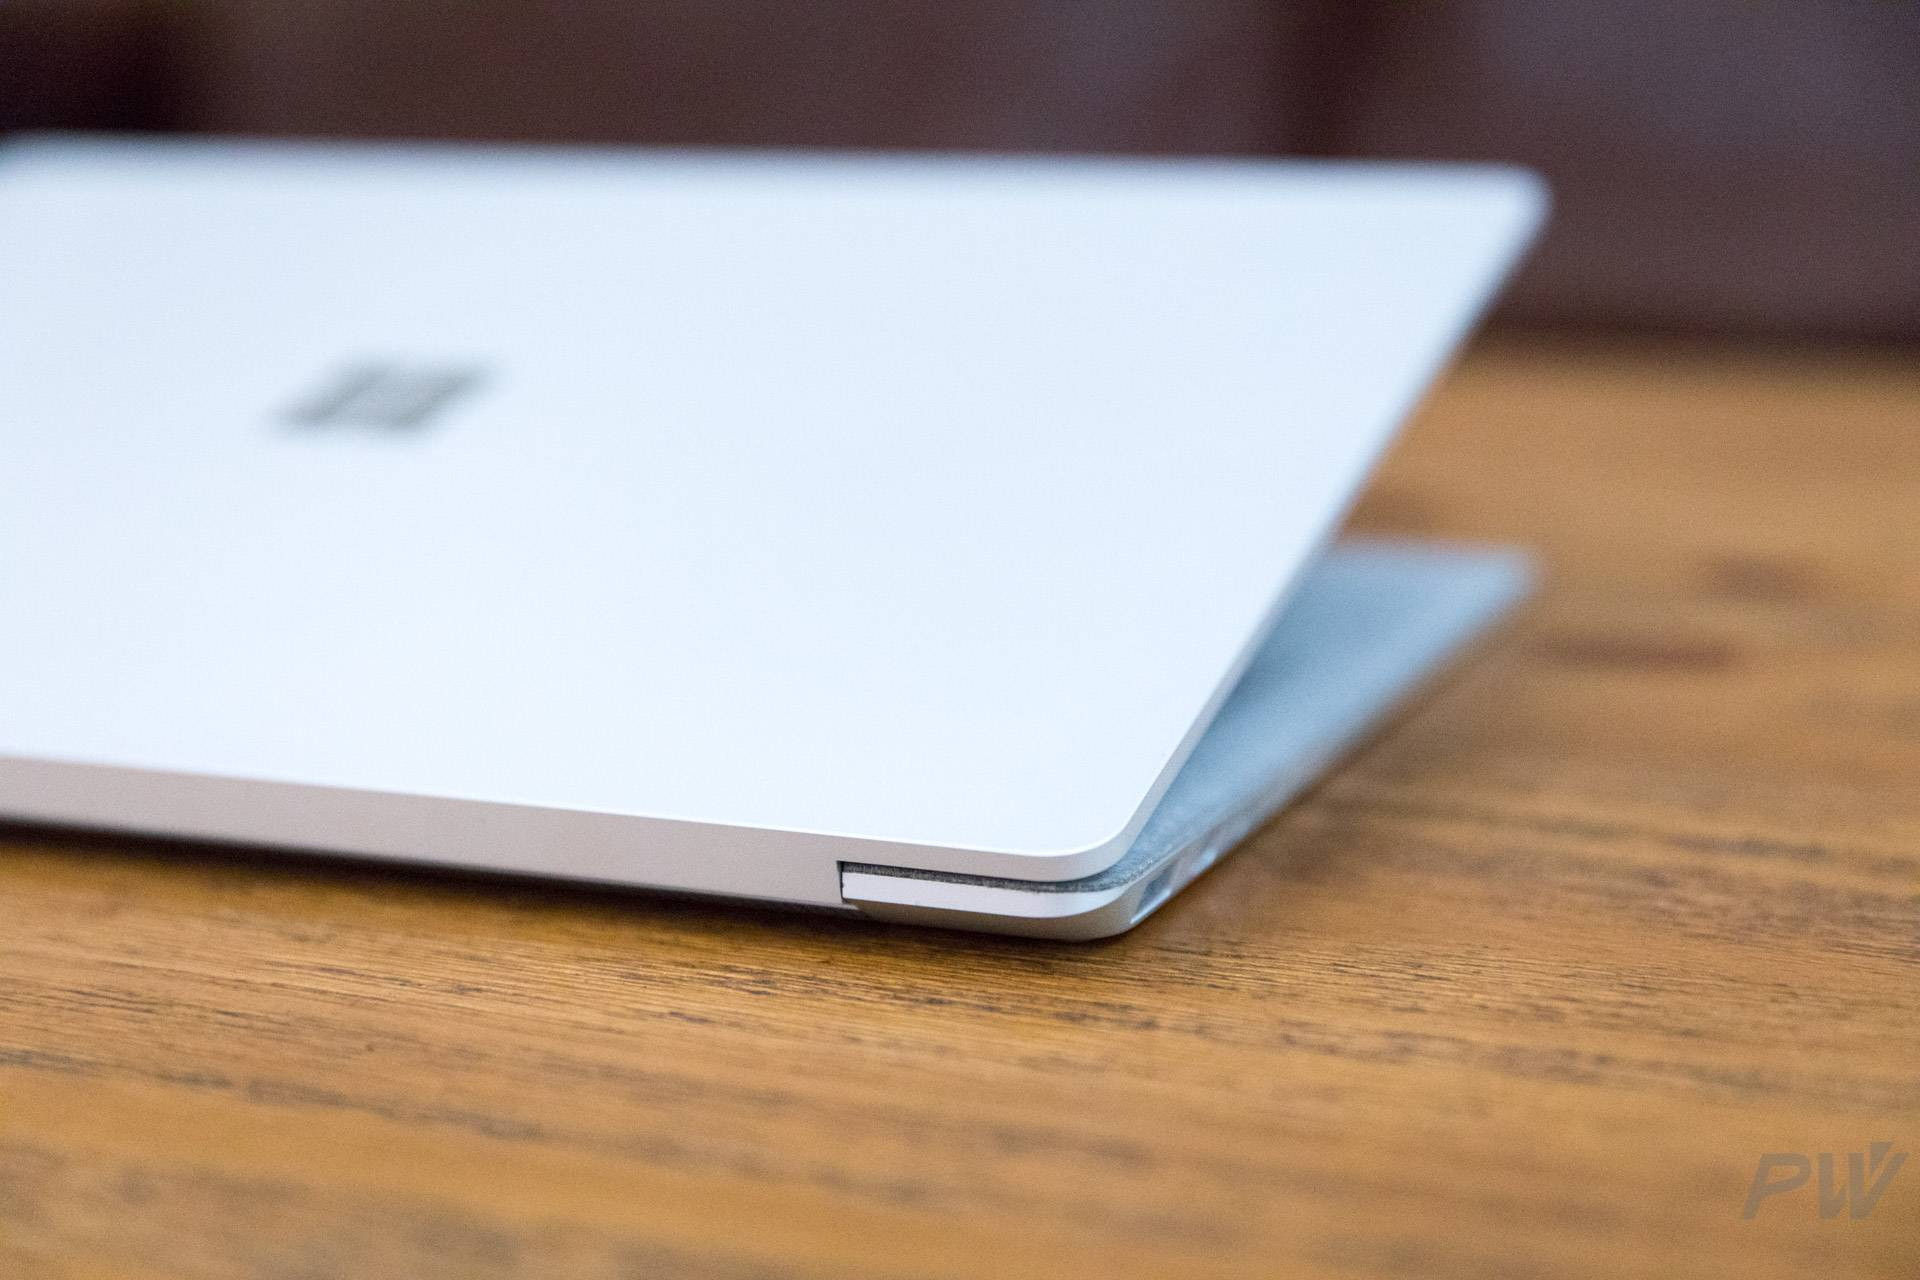 Surface Laptop 3200 Photo by Hao Ying-15